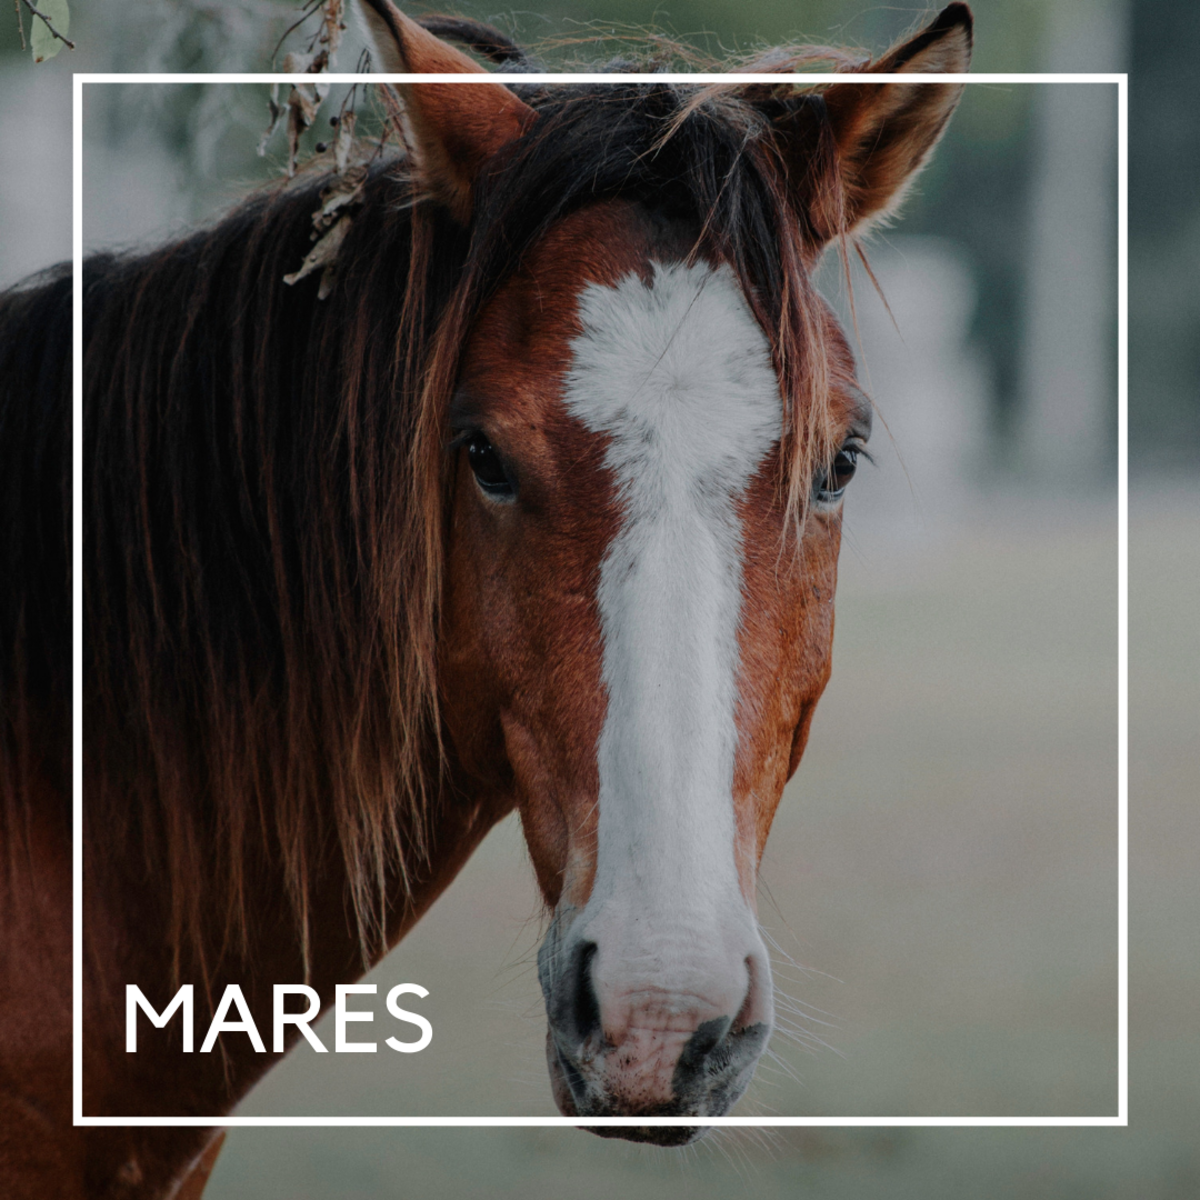 Horse names for mares.